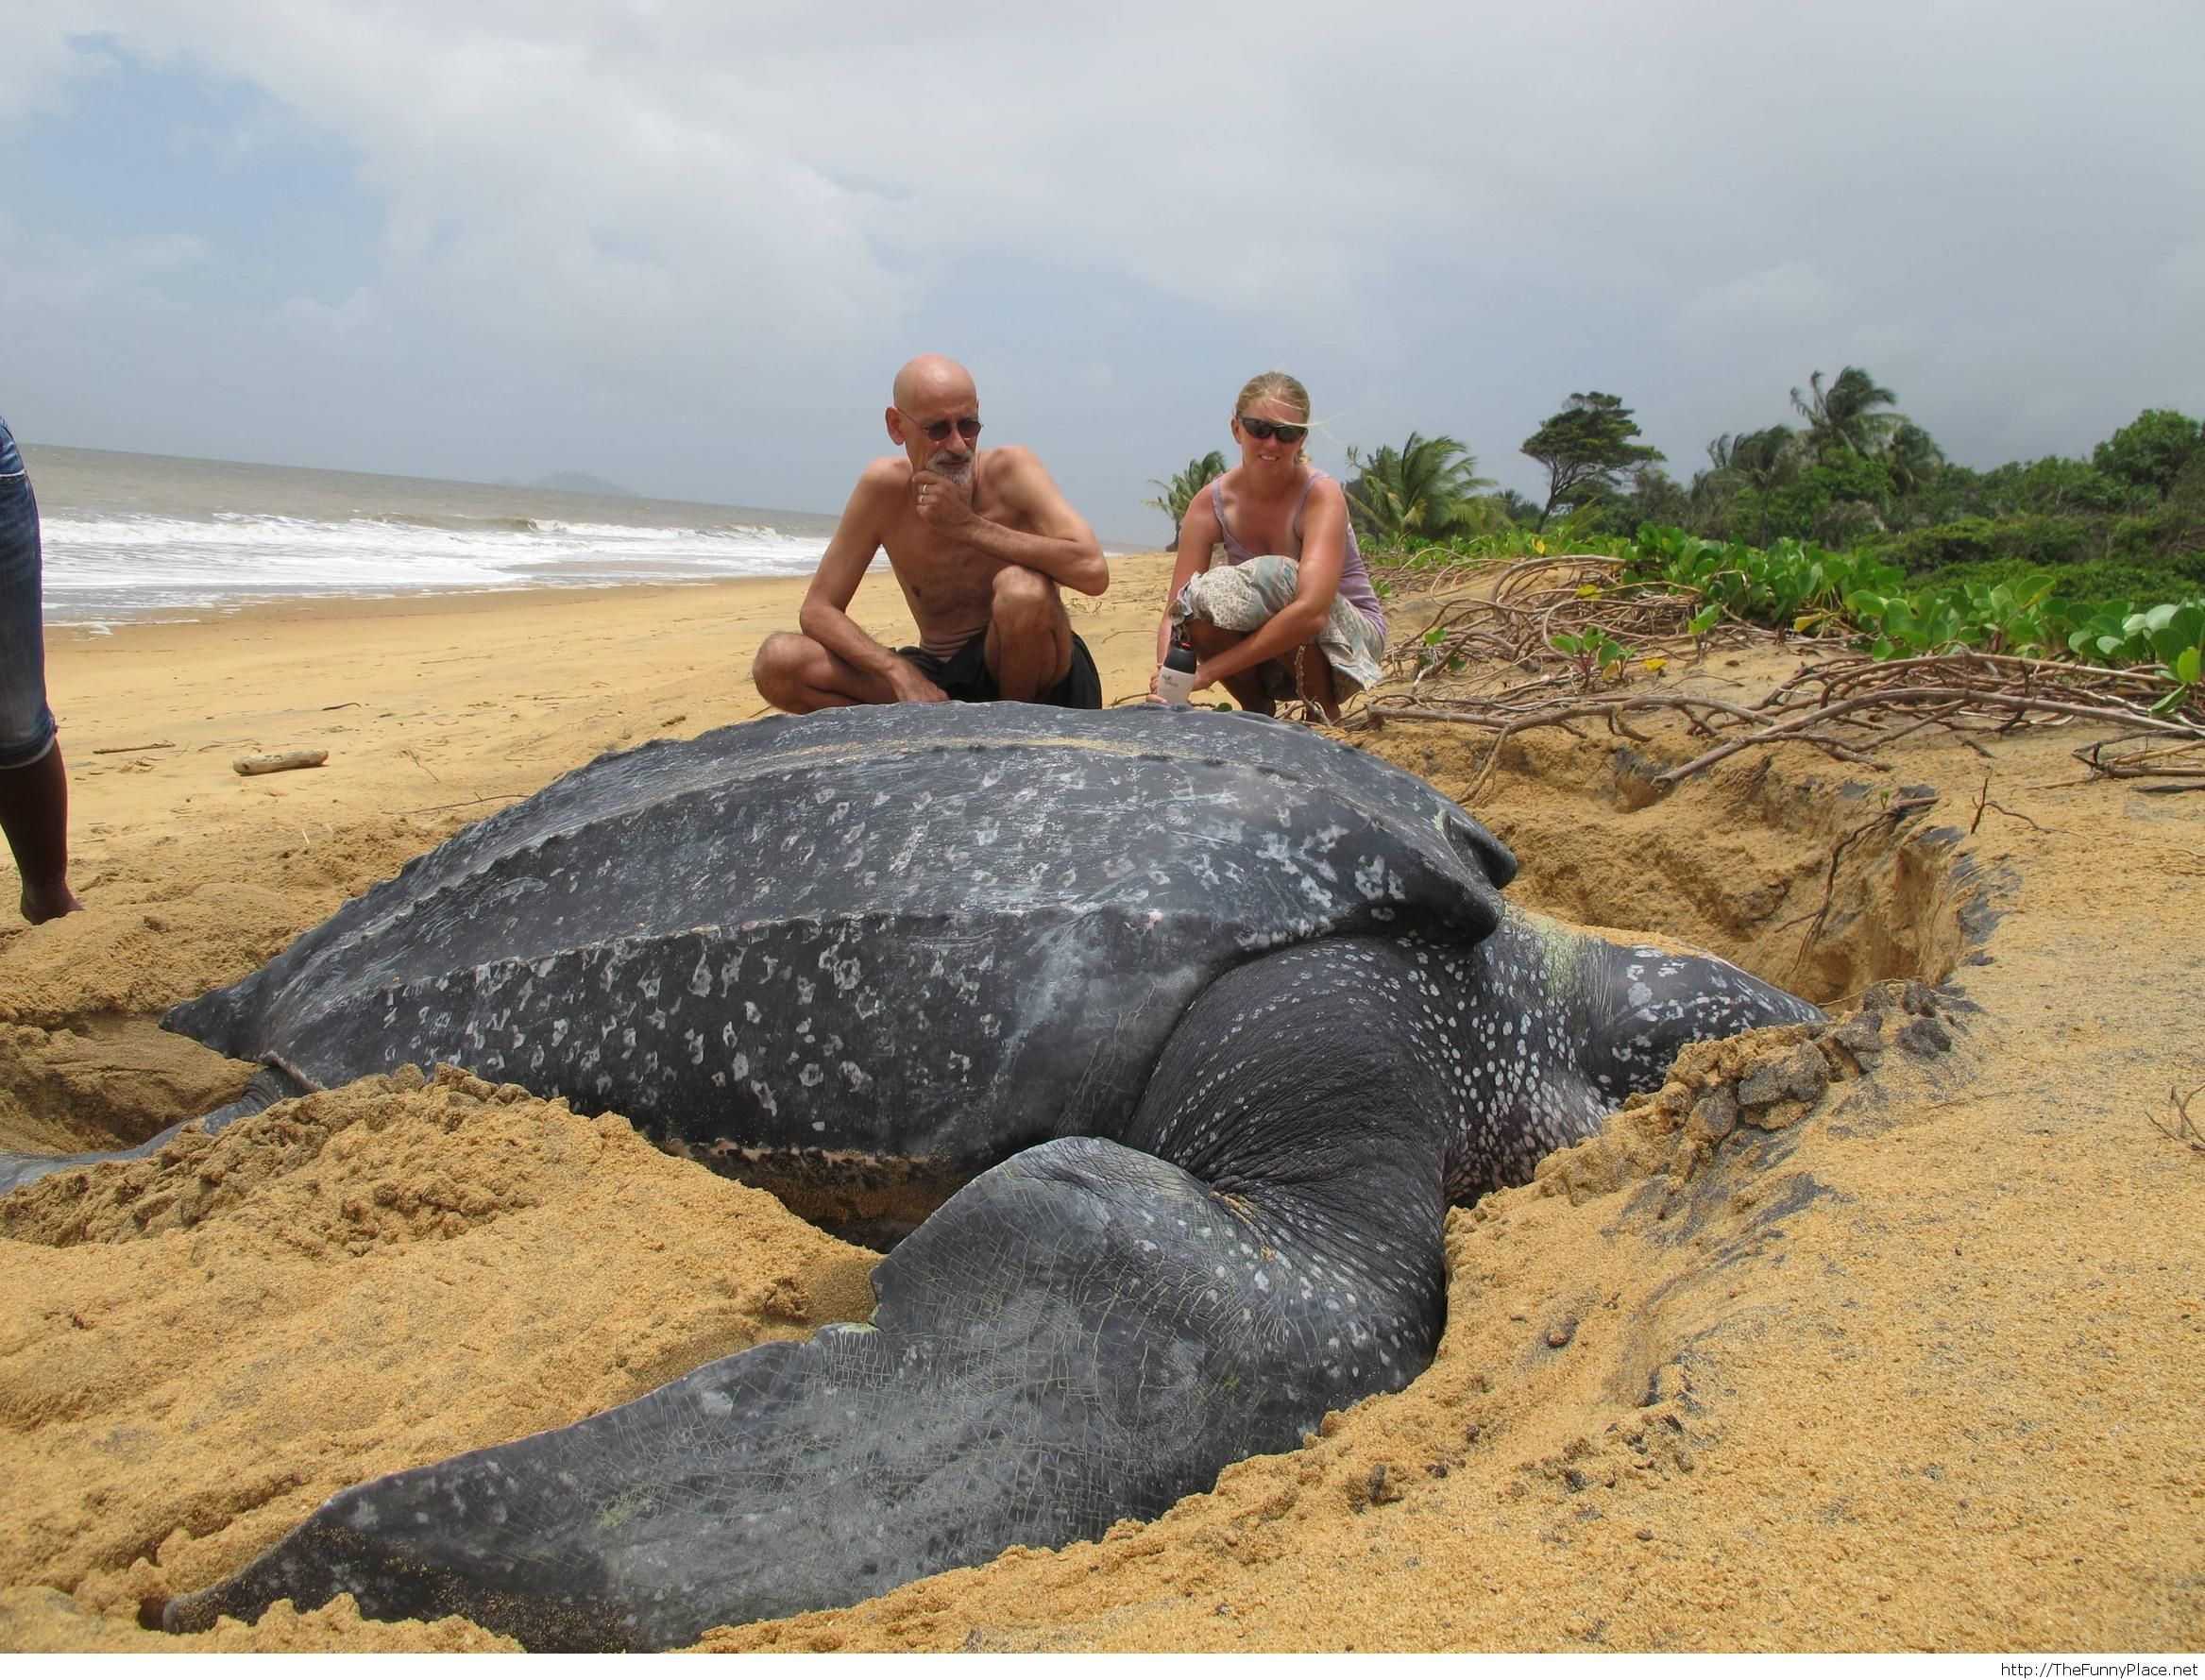 Just a big leatherback sea turtle...and Master Roshi